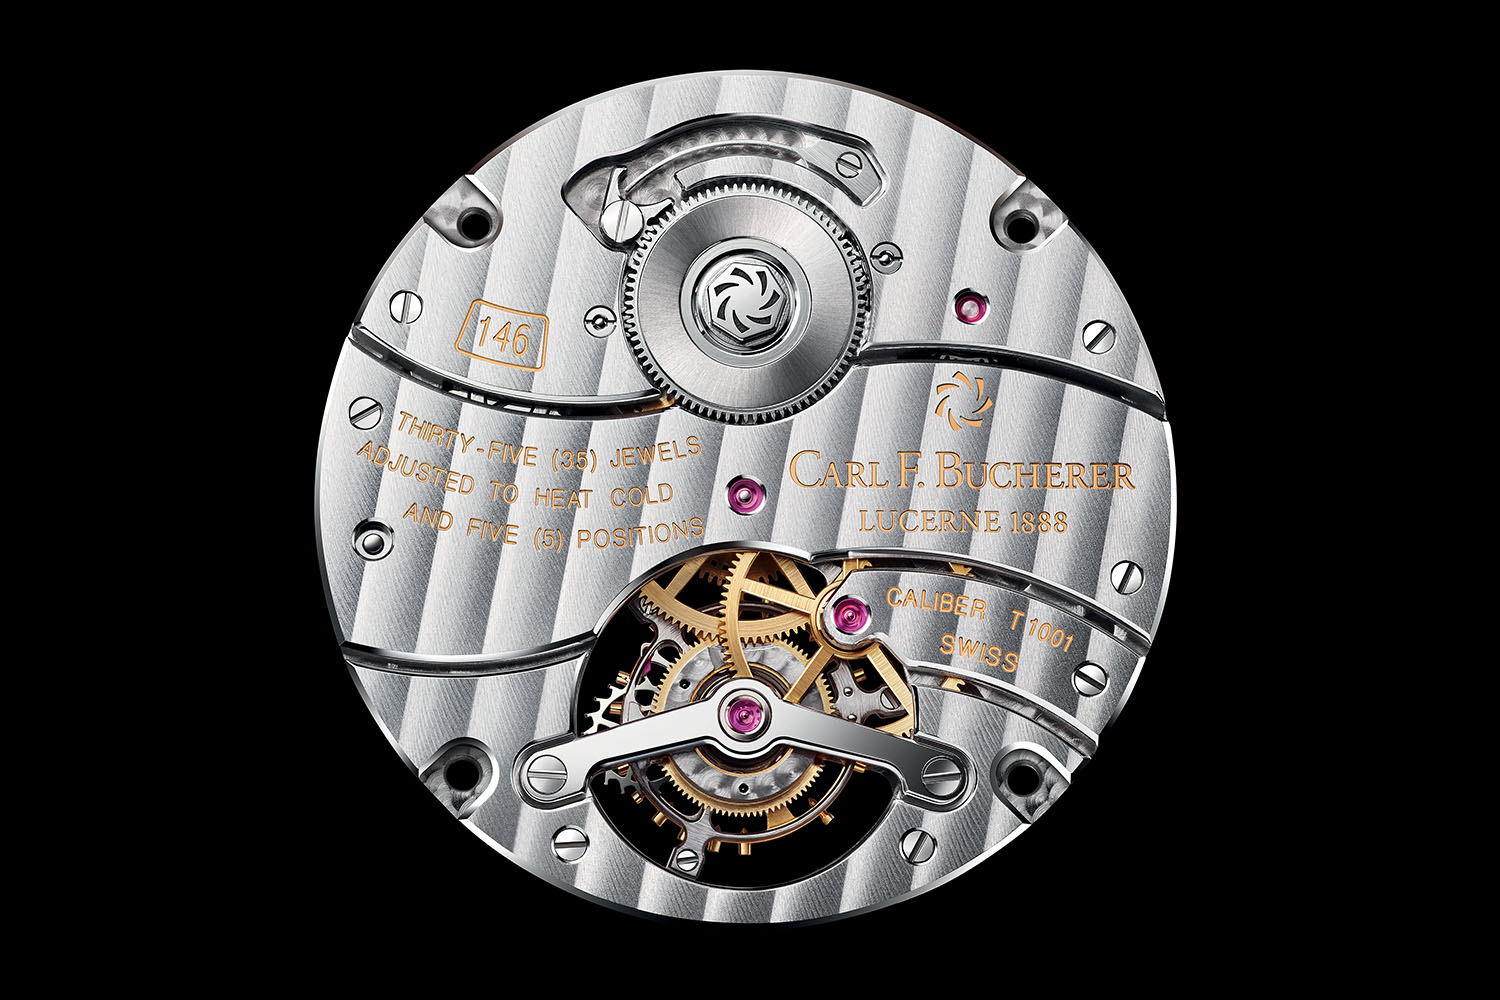 Carl F. Bucherer Manero Tourbillon Limited Edition 2016